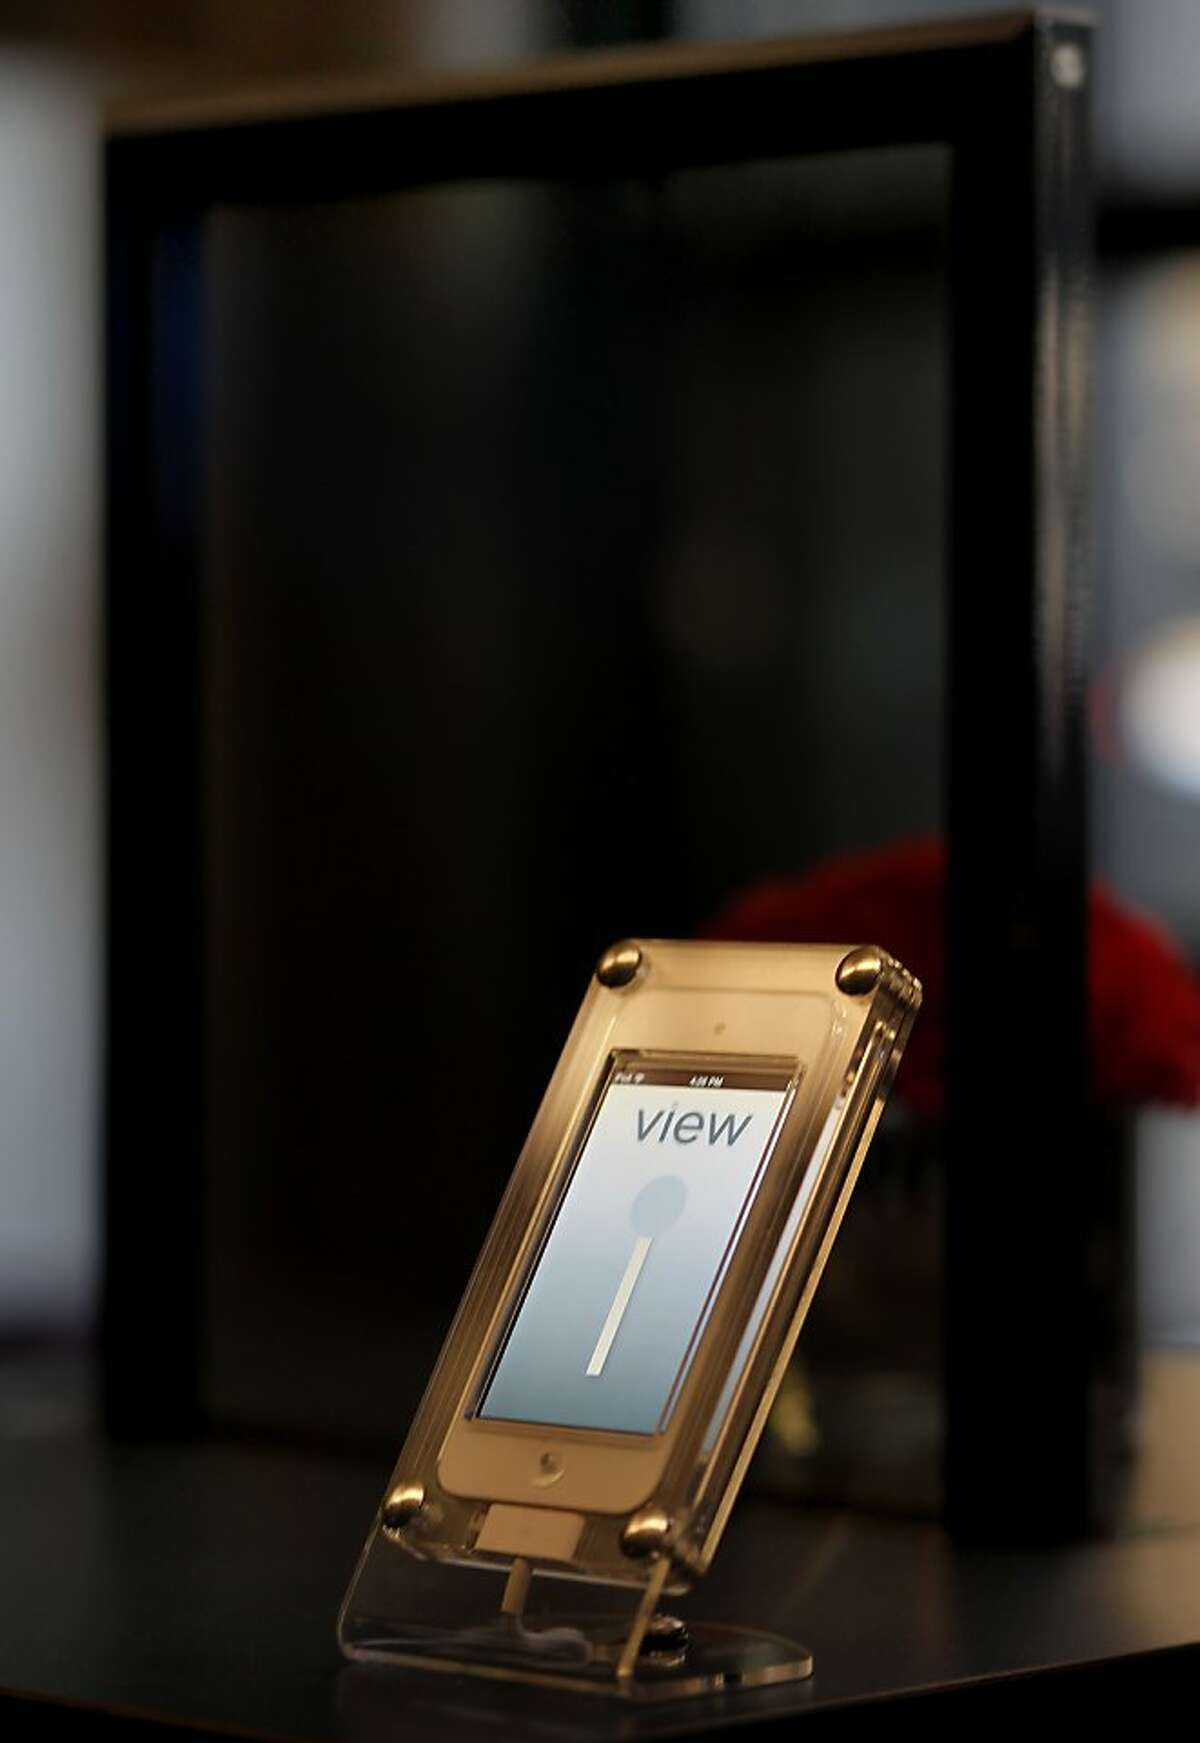 A display at the W Hotel in San Francisco, Calif. shows the phone application that can be used to darken glass, a sample which is in the rear. Milpitas, Calif. technology firm View Inc. has replaced windows at the W Hotel with their own